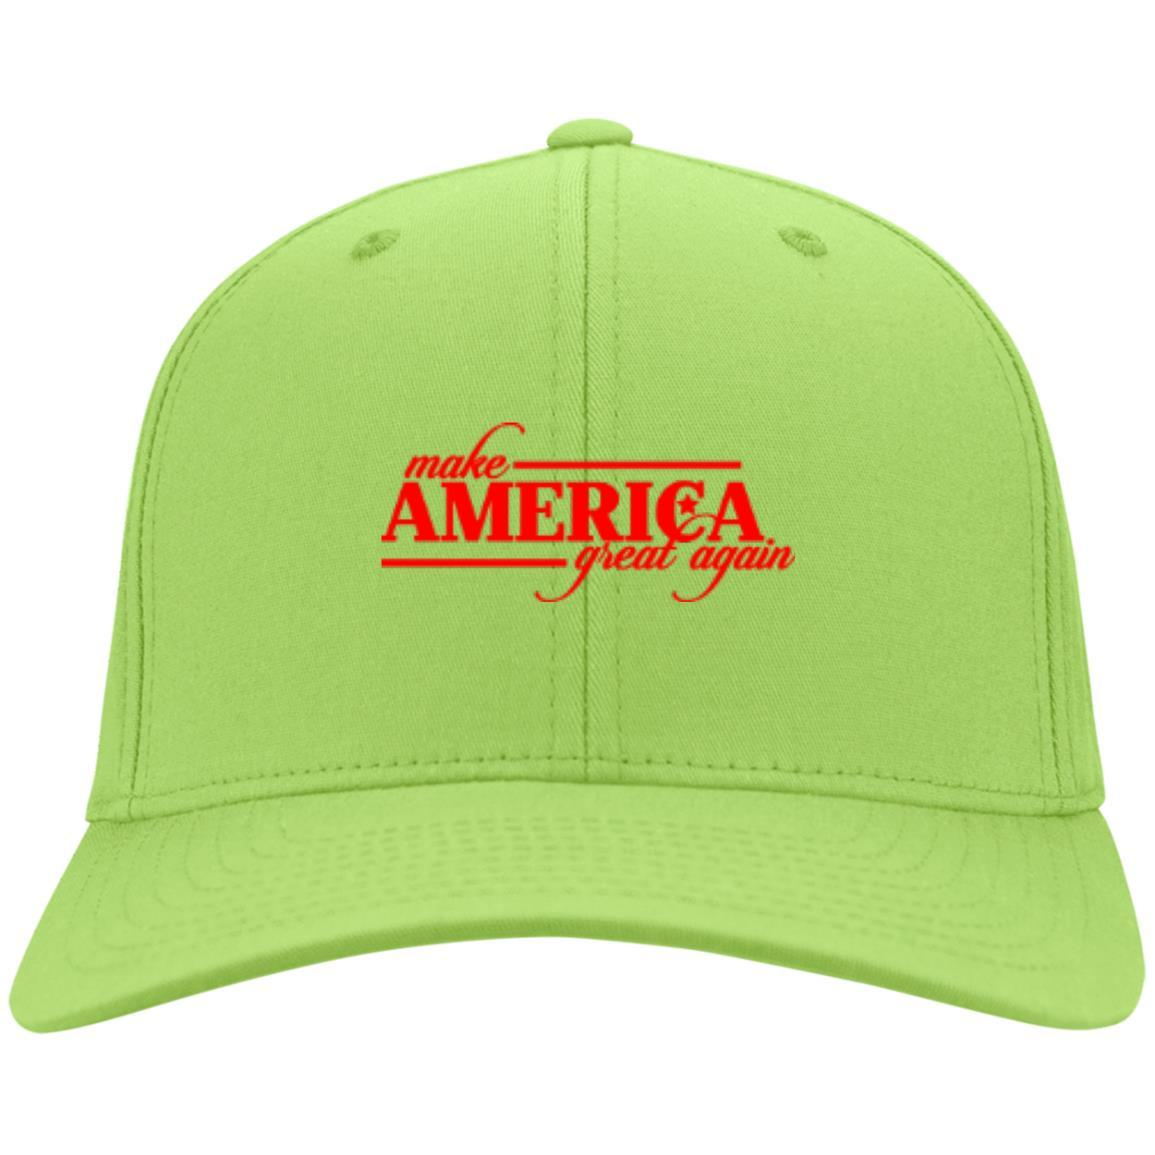 Make America Great Again - Port & Co. Twill Cap Lime